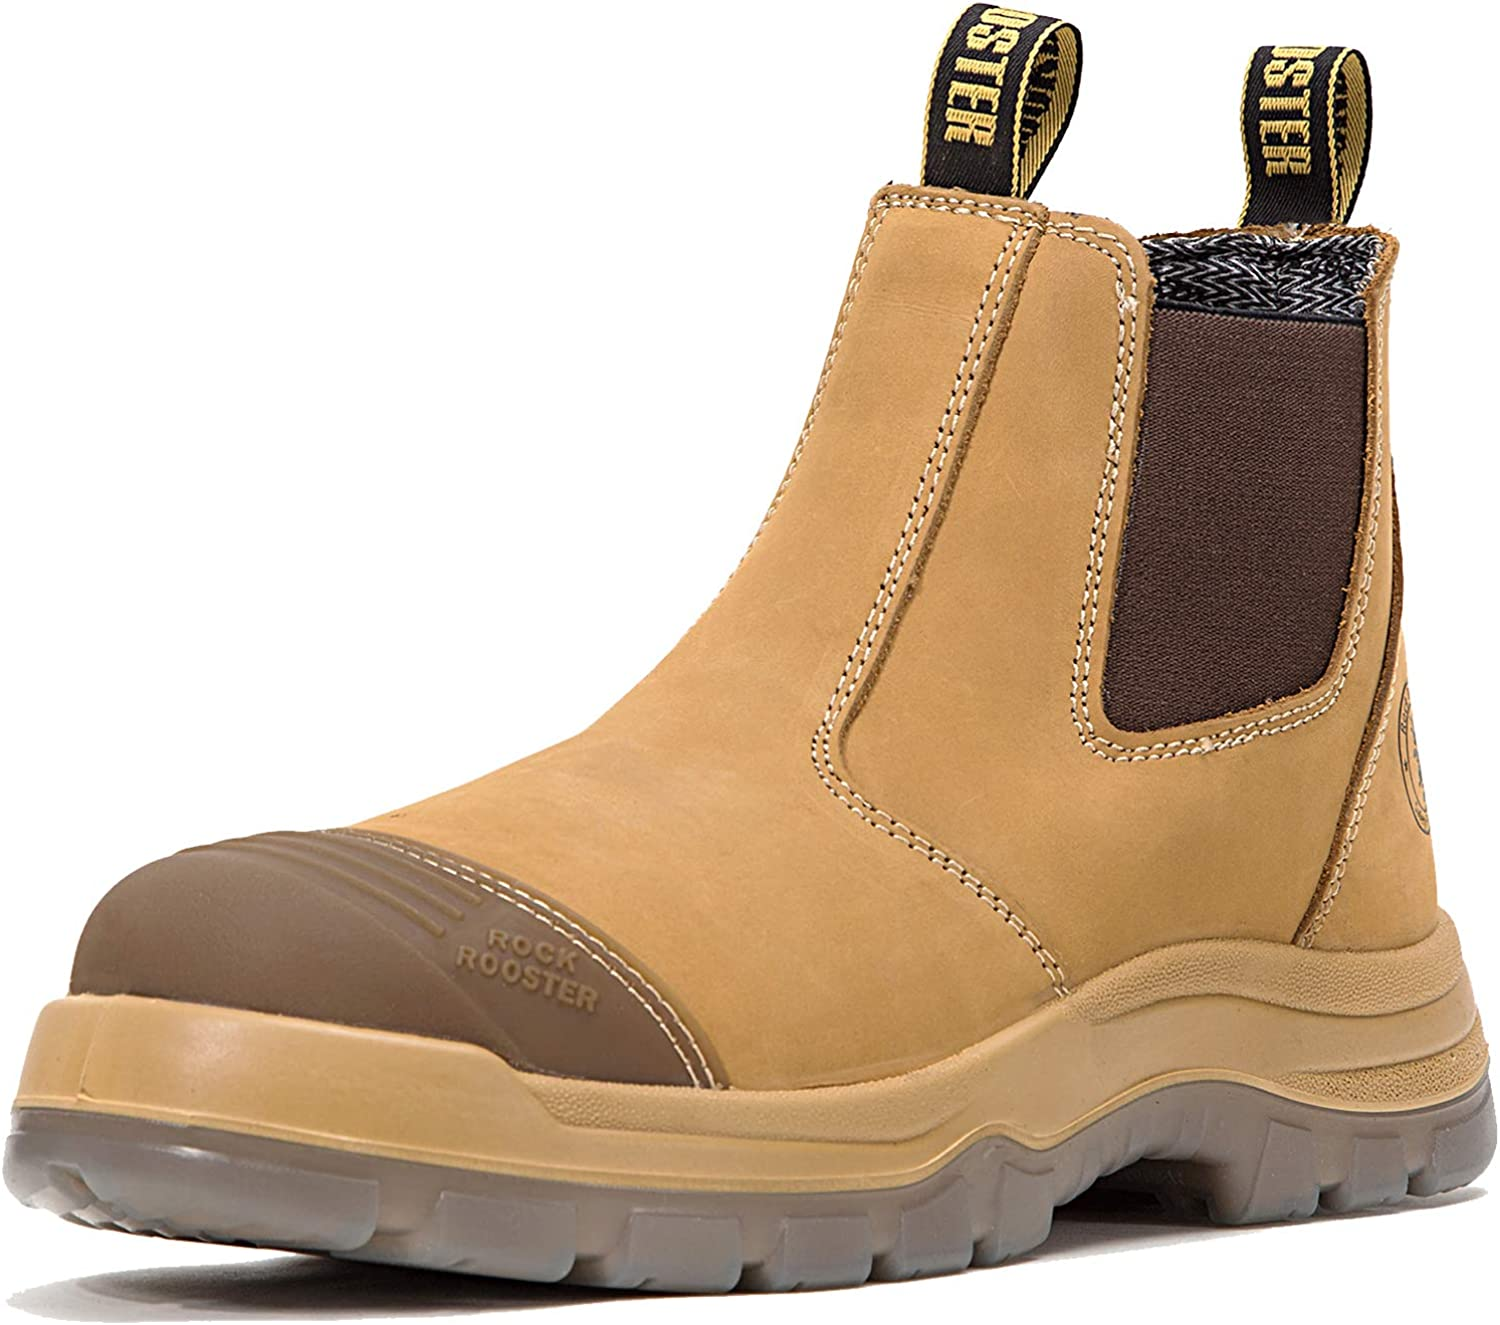 ROCKROOSTER Work Boots for Men, 6 inch Steel Toe, Slip On Safety Oiled Leather Shoes, Static Dissipative, Breathable, Quick Dry(AK227, AK222)